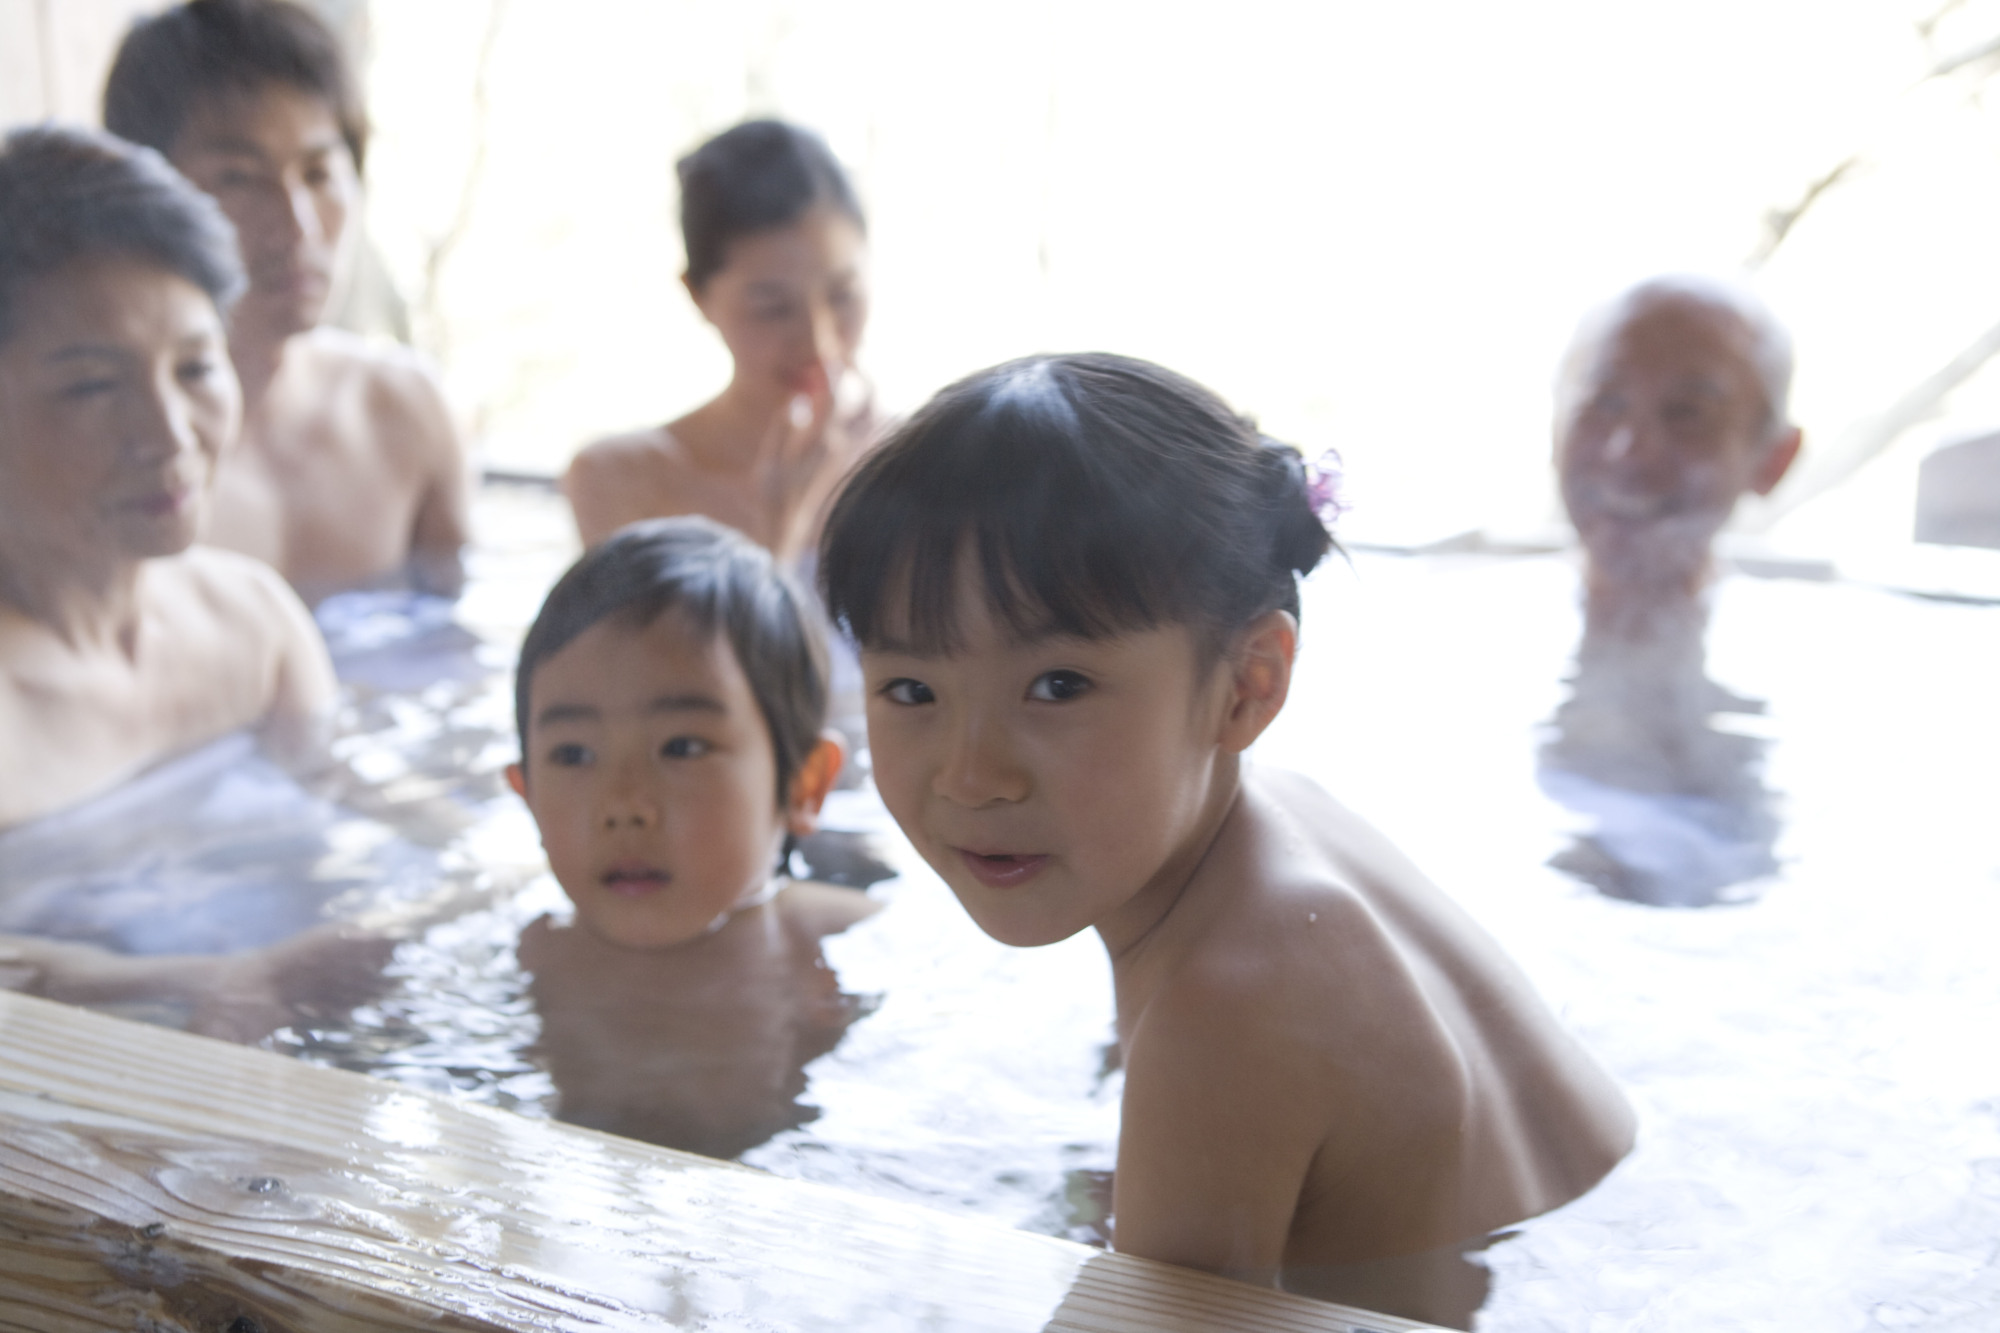 Family dip: Japanese spas are great places to take kids to warm up during the cold winter. | GETTY IMAGES